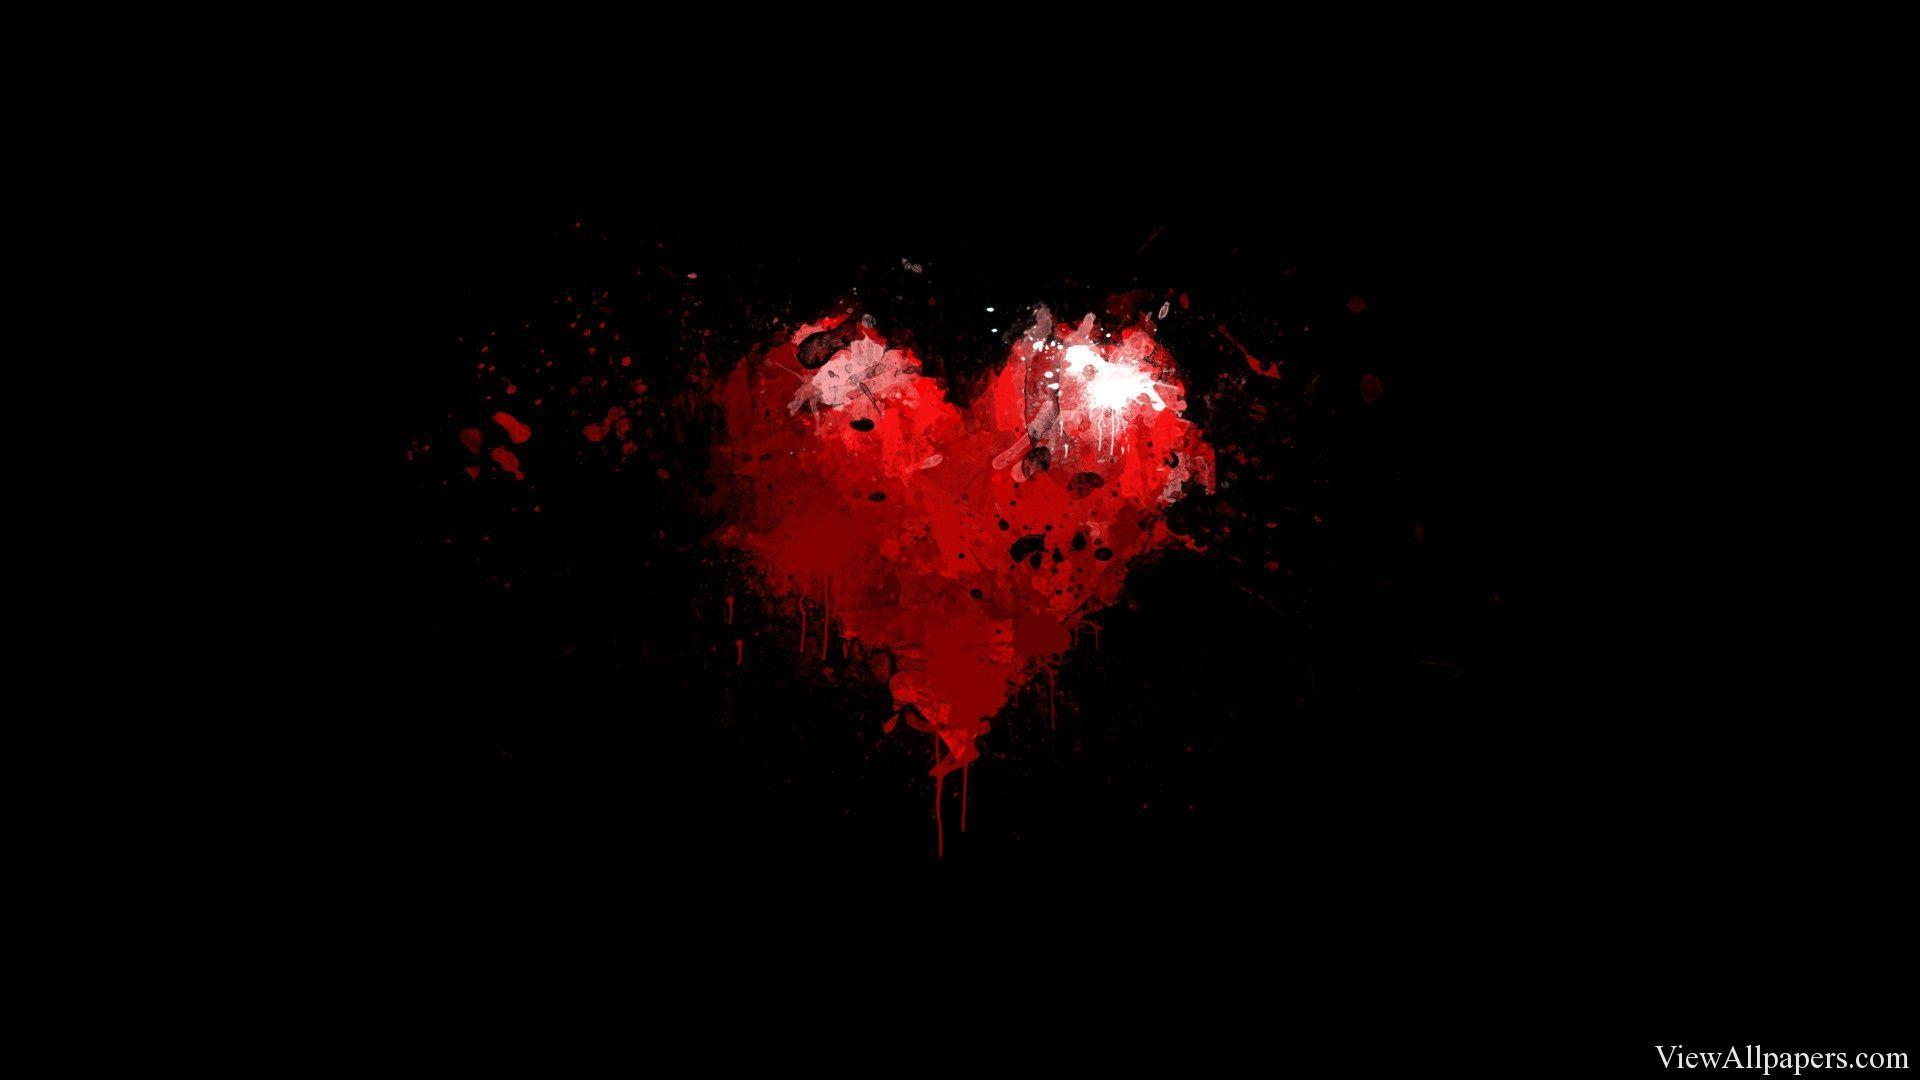 Painted Red Heart on Black Backgrounds Wallpapers